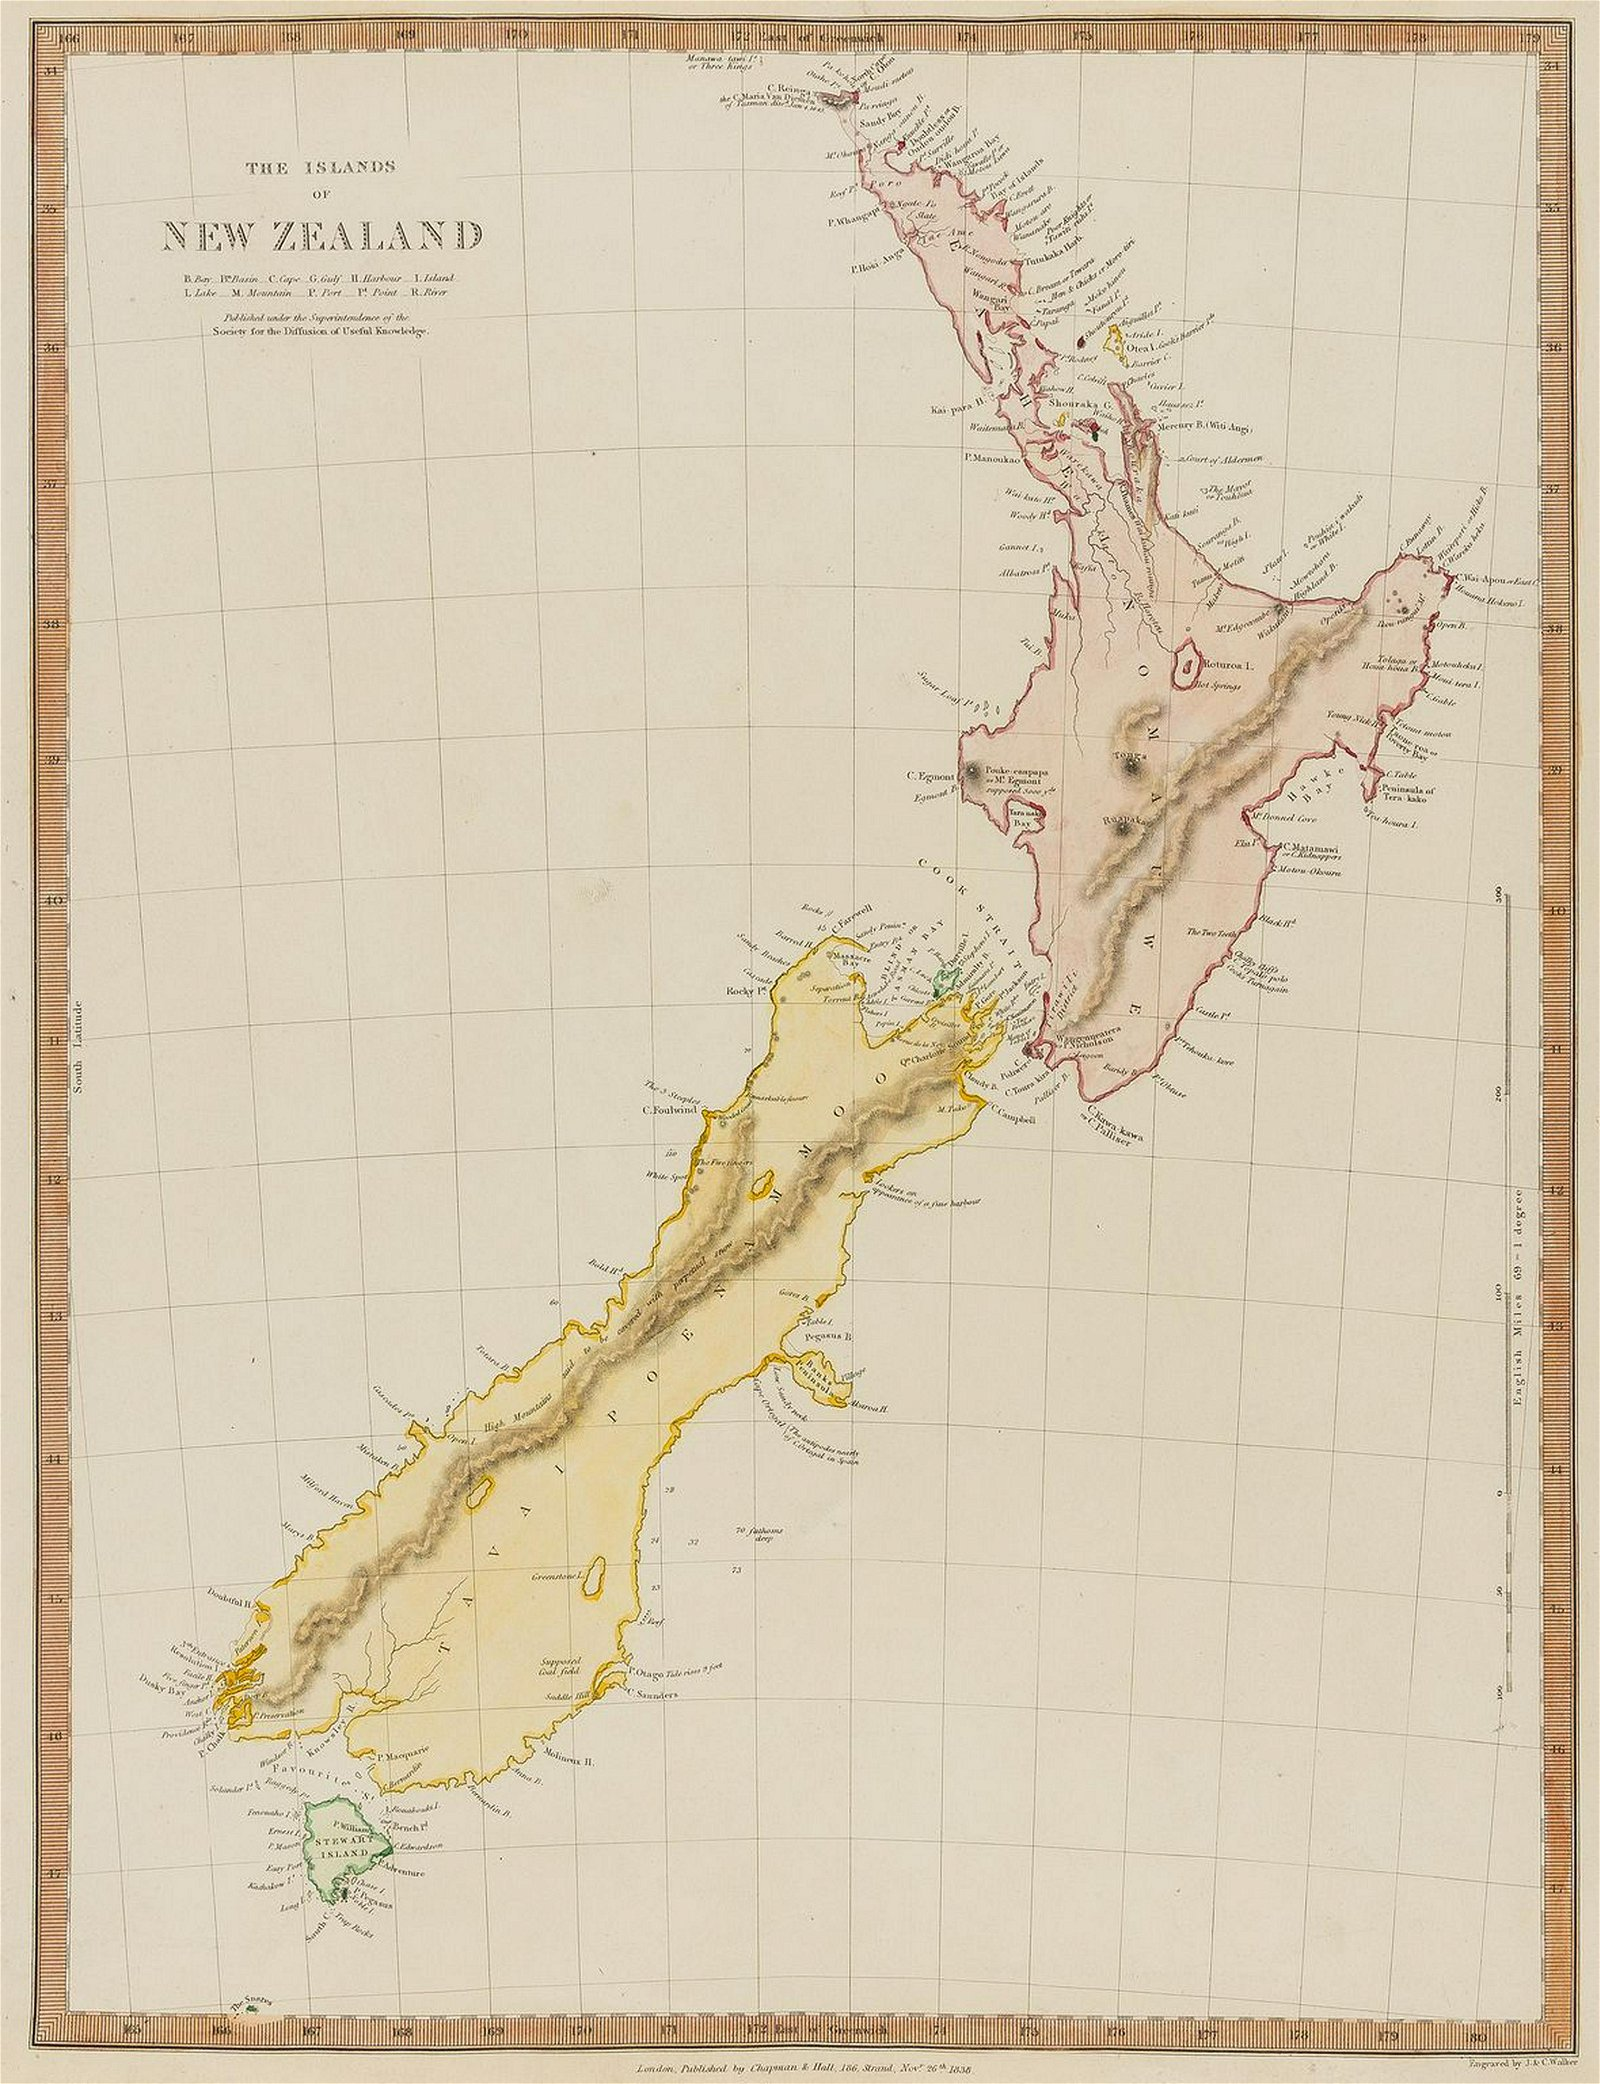 New Zealand.- SDUK (Society for the Diffusion of Useful